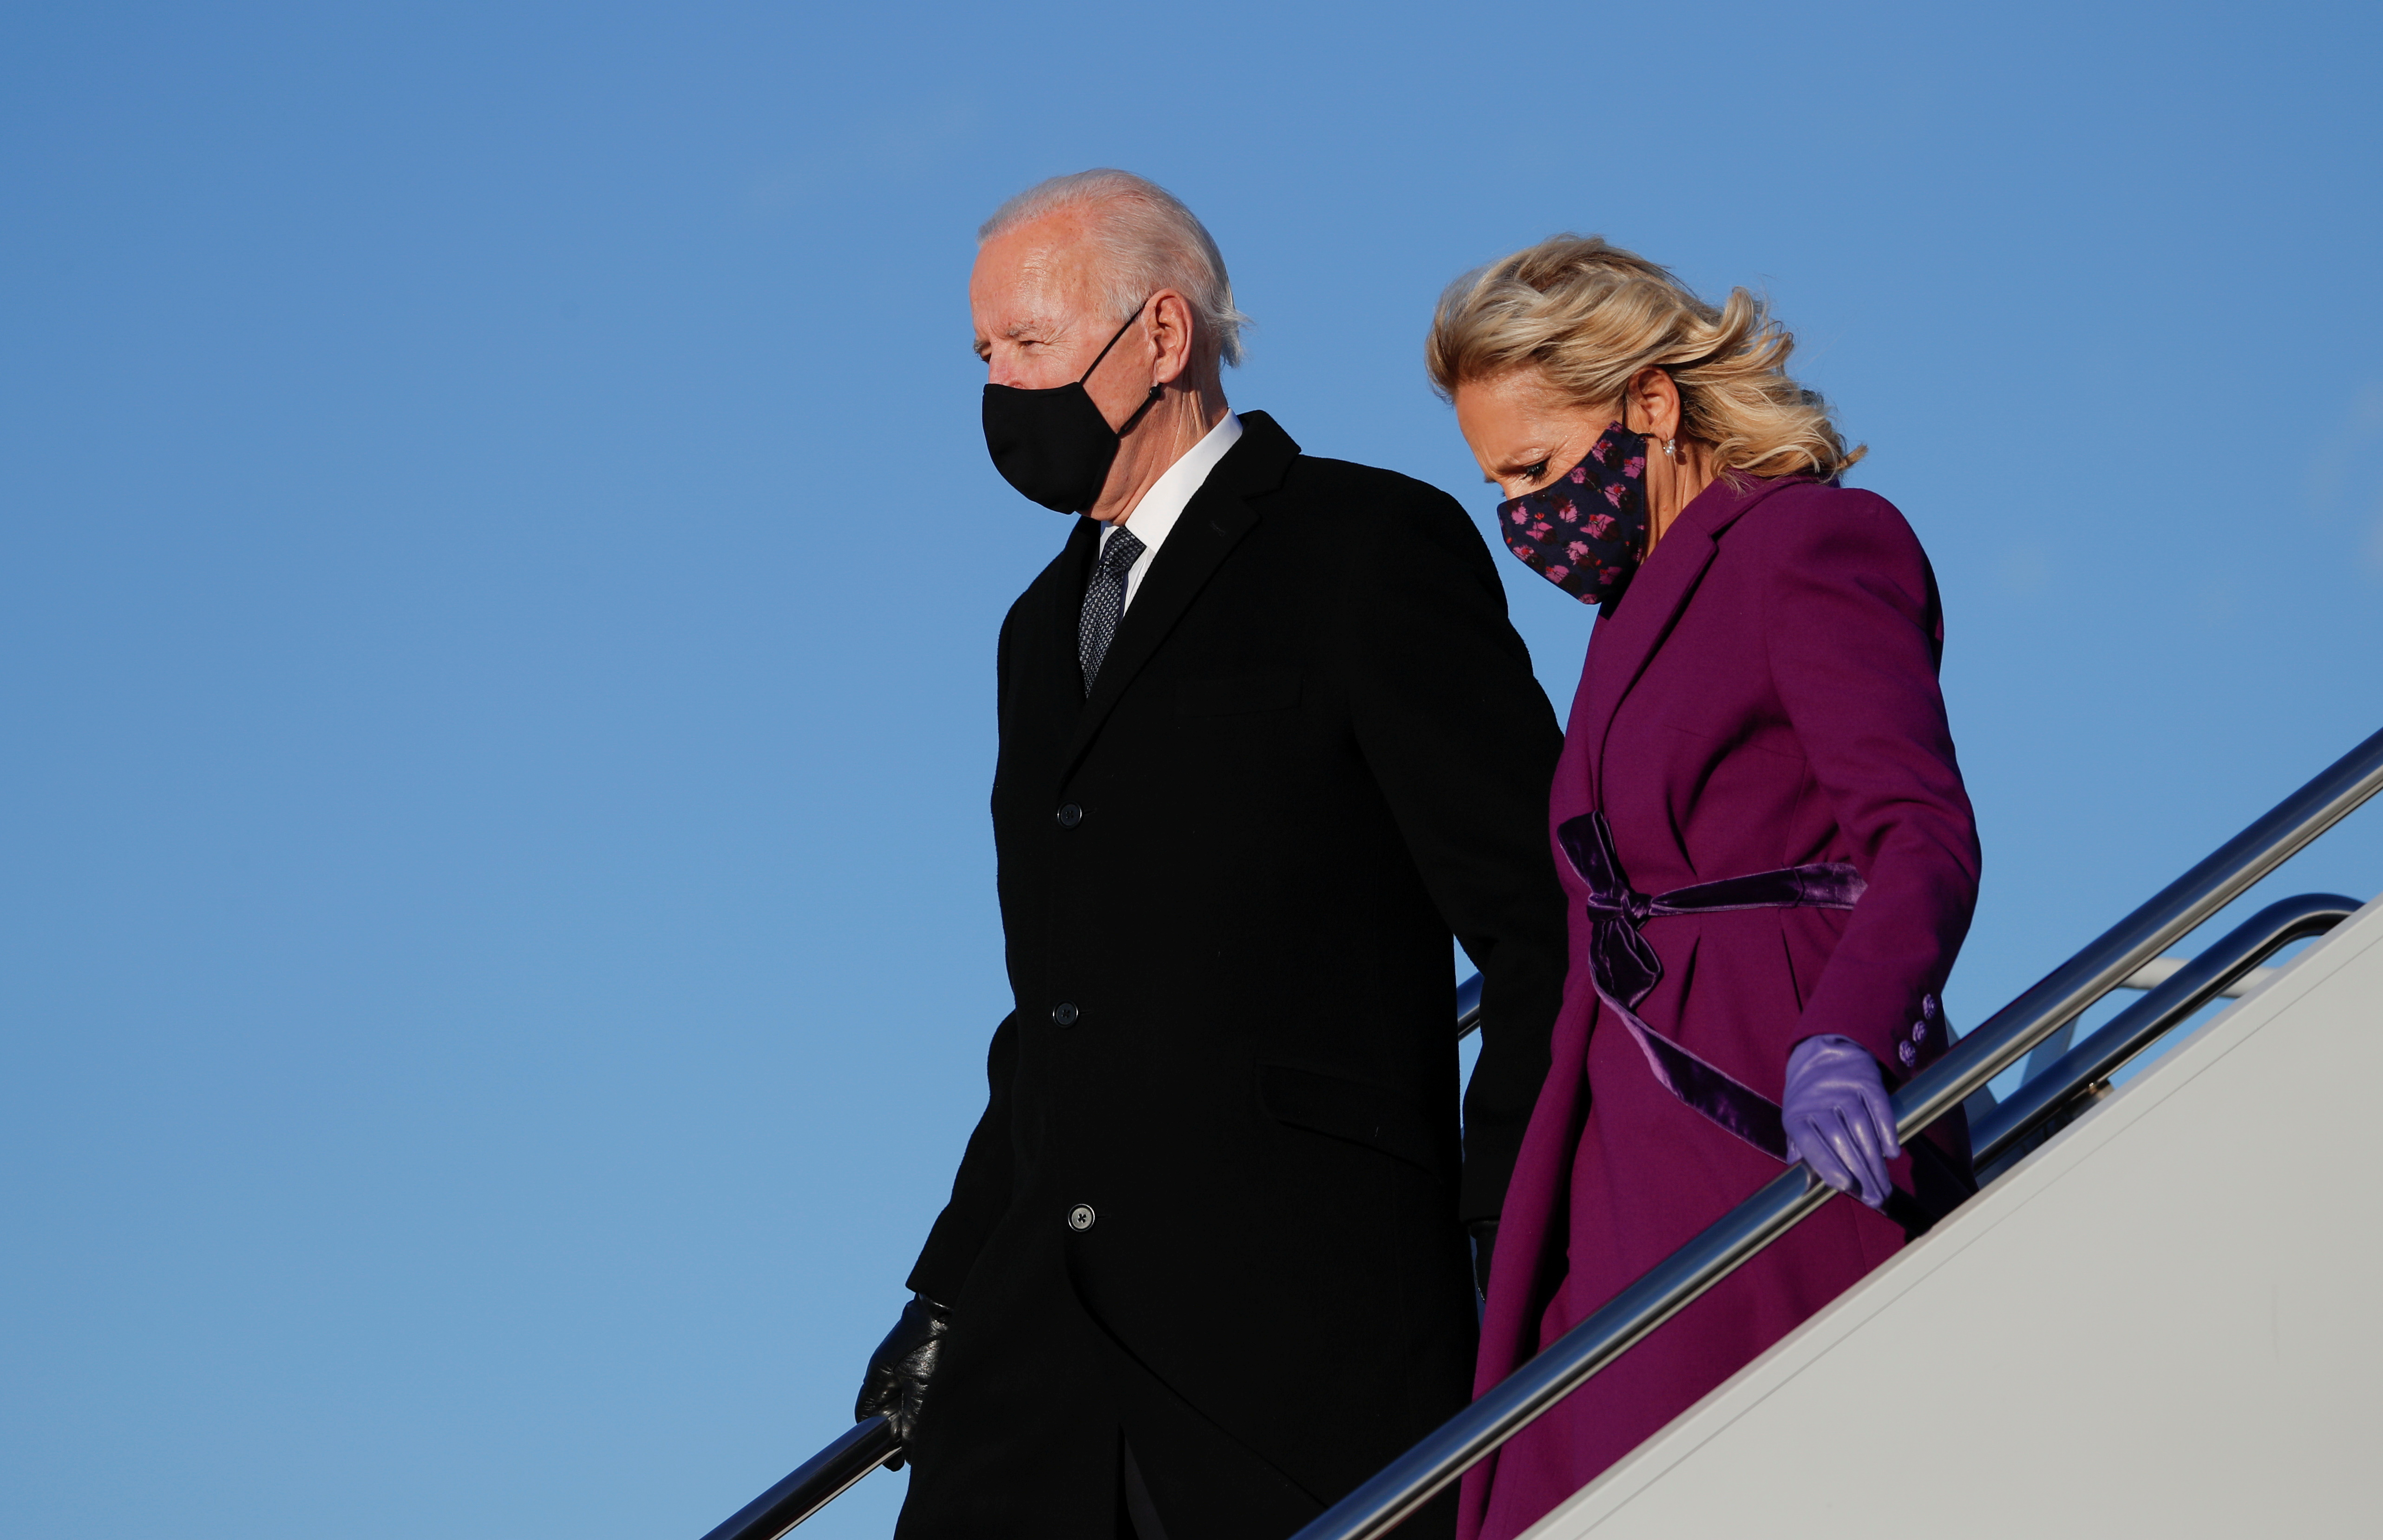 U.S. President-elect Joe Biden and his wife Jill disembark a plane at Joint Base Andrews in Maryland, U.S. January 19, 2021. REUTERS/Tom Brenner